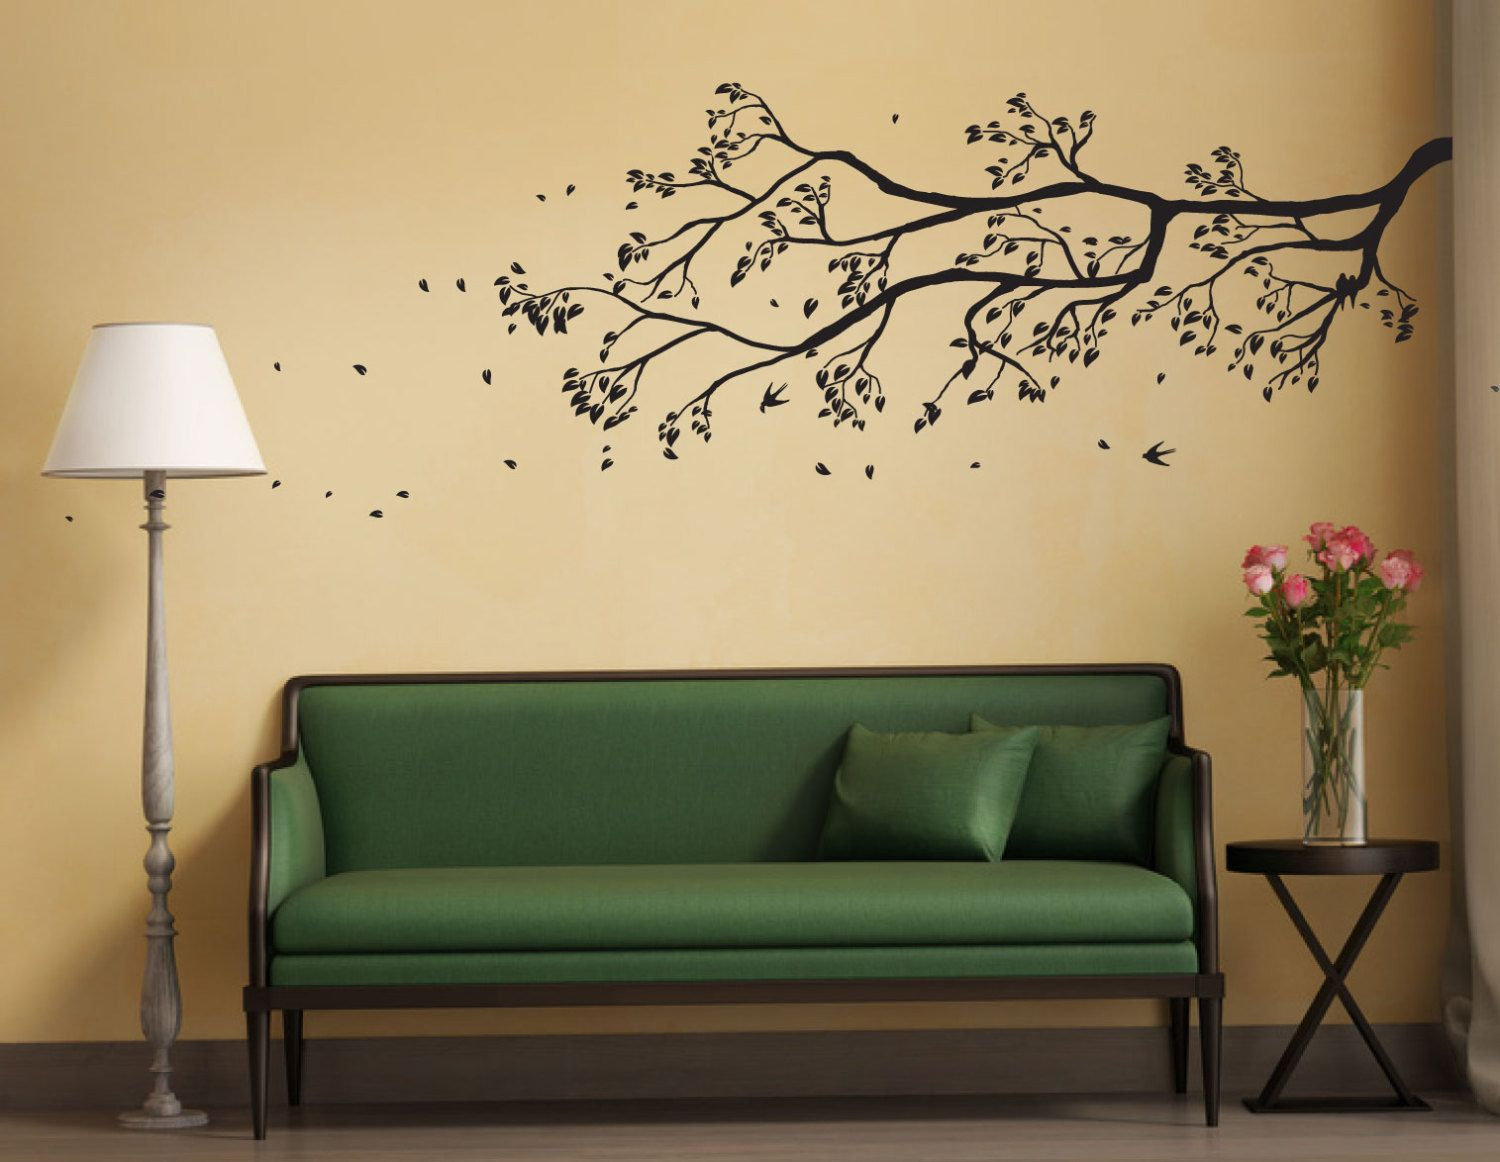 Tree Branch Wall Sticker with falling leaves and birds perched ...